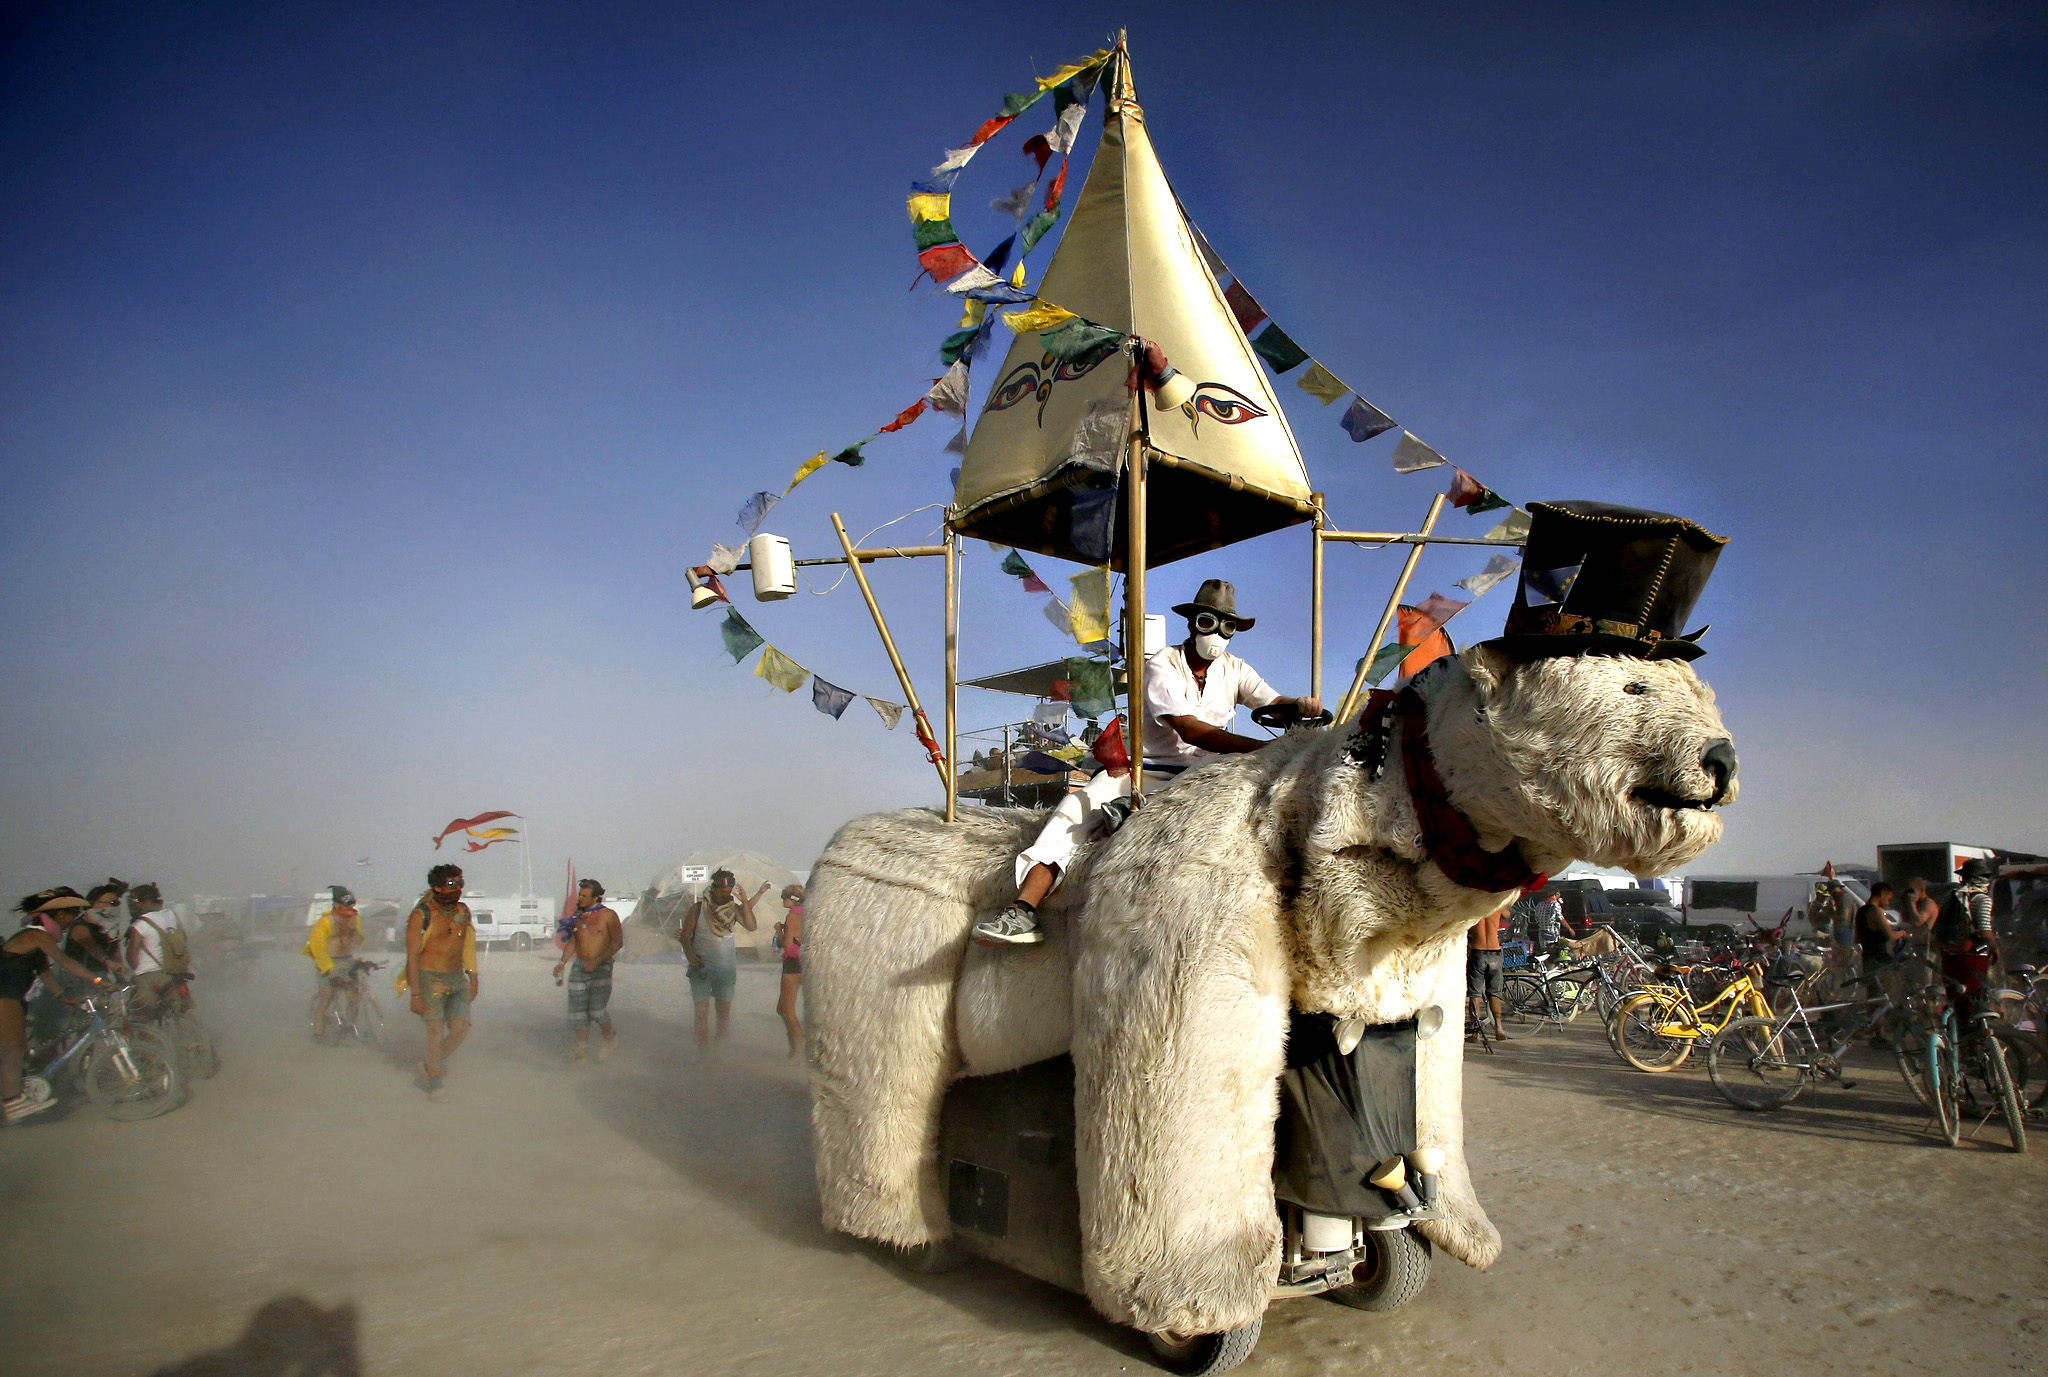 "A Mutant Vehicle made up like a polar bear drives through the dust during the Burning Man 2015 ""Carnival of Mirrors"" arts and music festival in the Black Rock Desert of Nevada. Participants from all over the world attend the sold-out festival to spend a week in the remote desert to experience art, music and the unique community that develops"